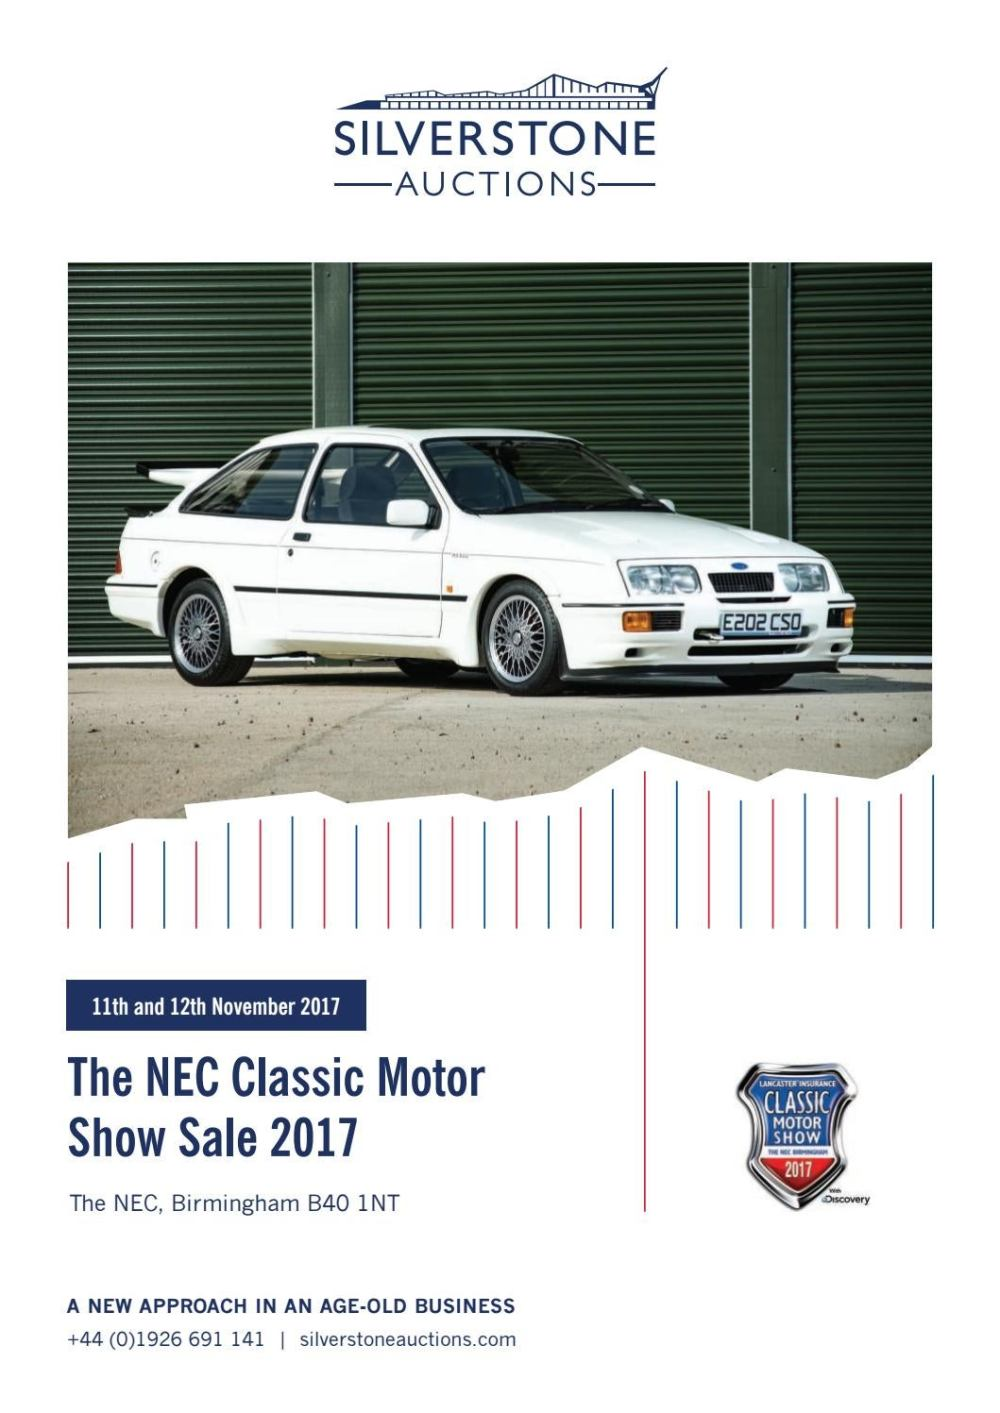 medium resolution of silverstone auctions the nec classic motor show sale 2017 11 12 november by silverstone auctions issuu